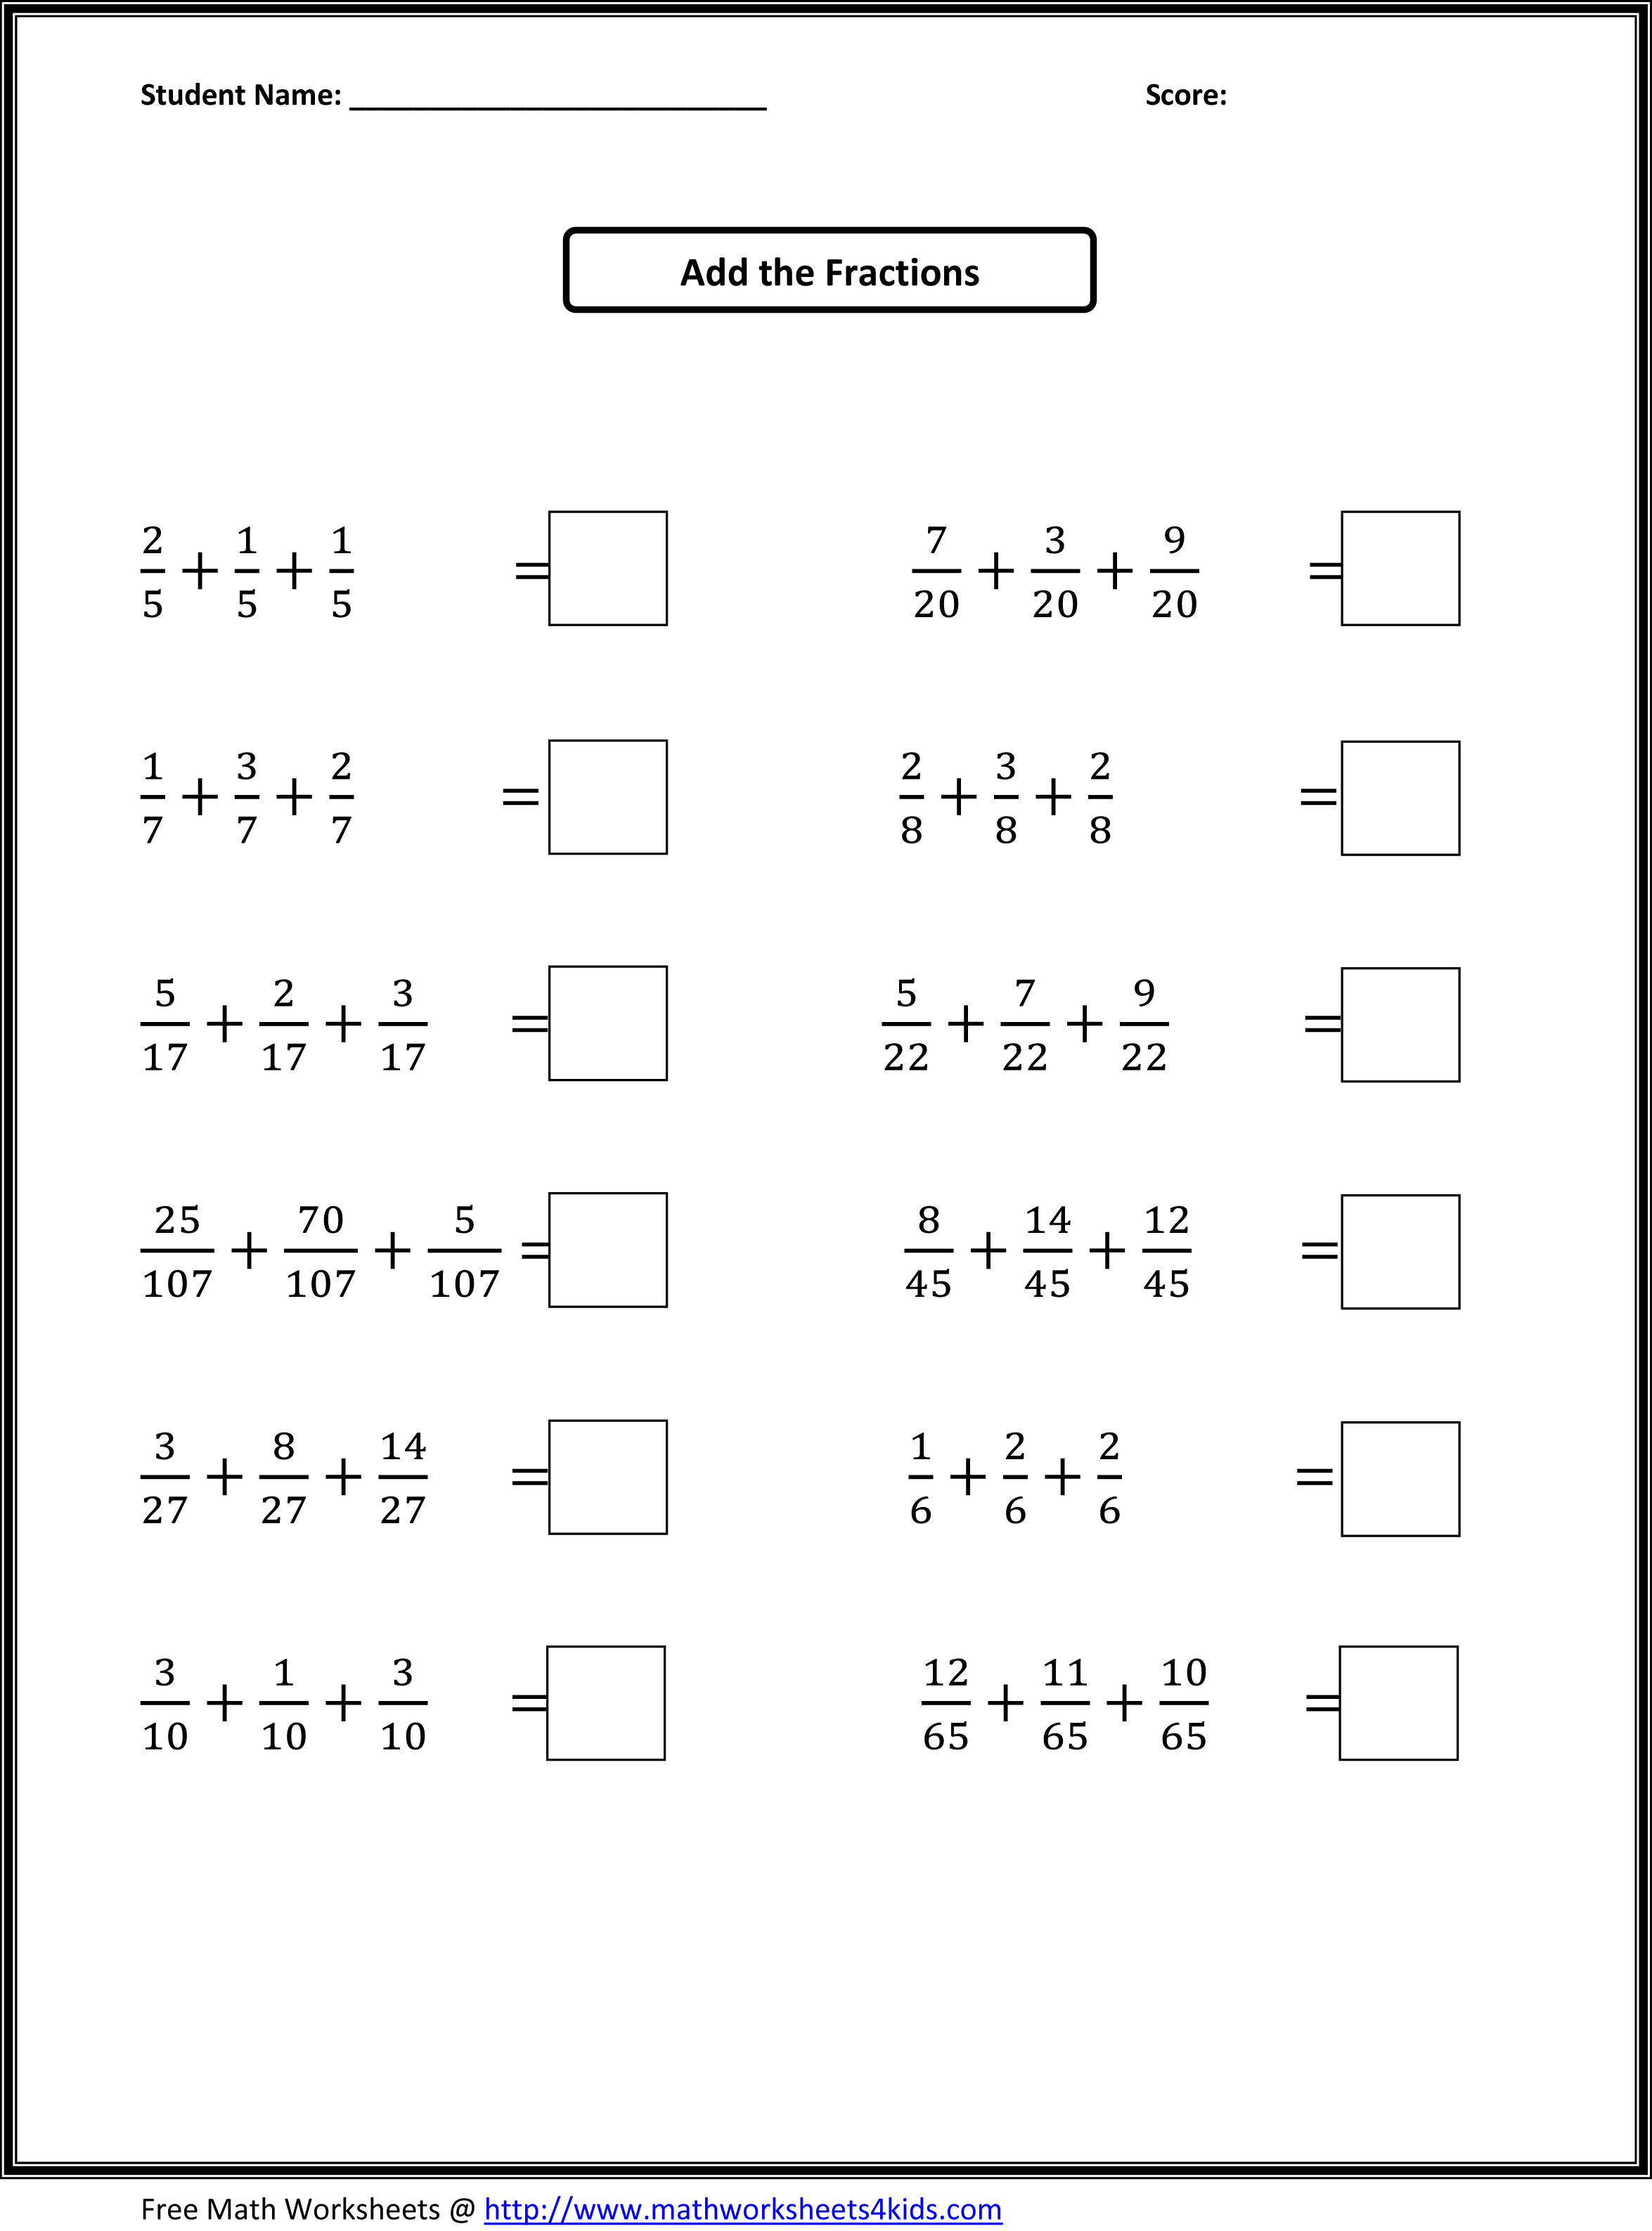 math worksheet : 4th grade math worksheets multiplying fractions  kids activities : Multiplying Fractions 5th Grade Worksheets